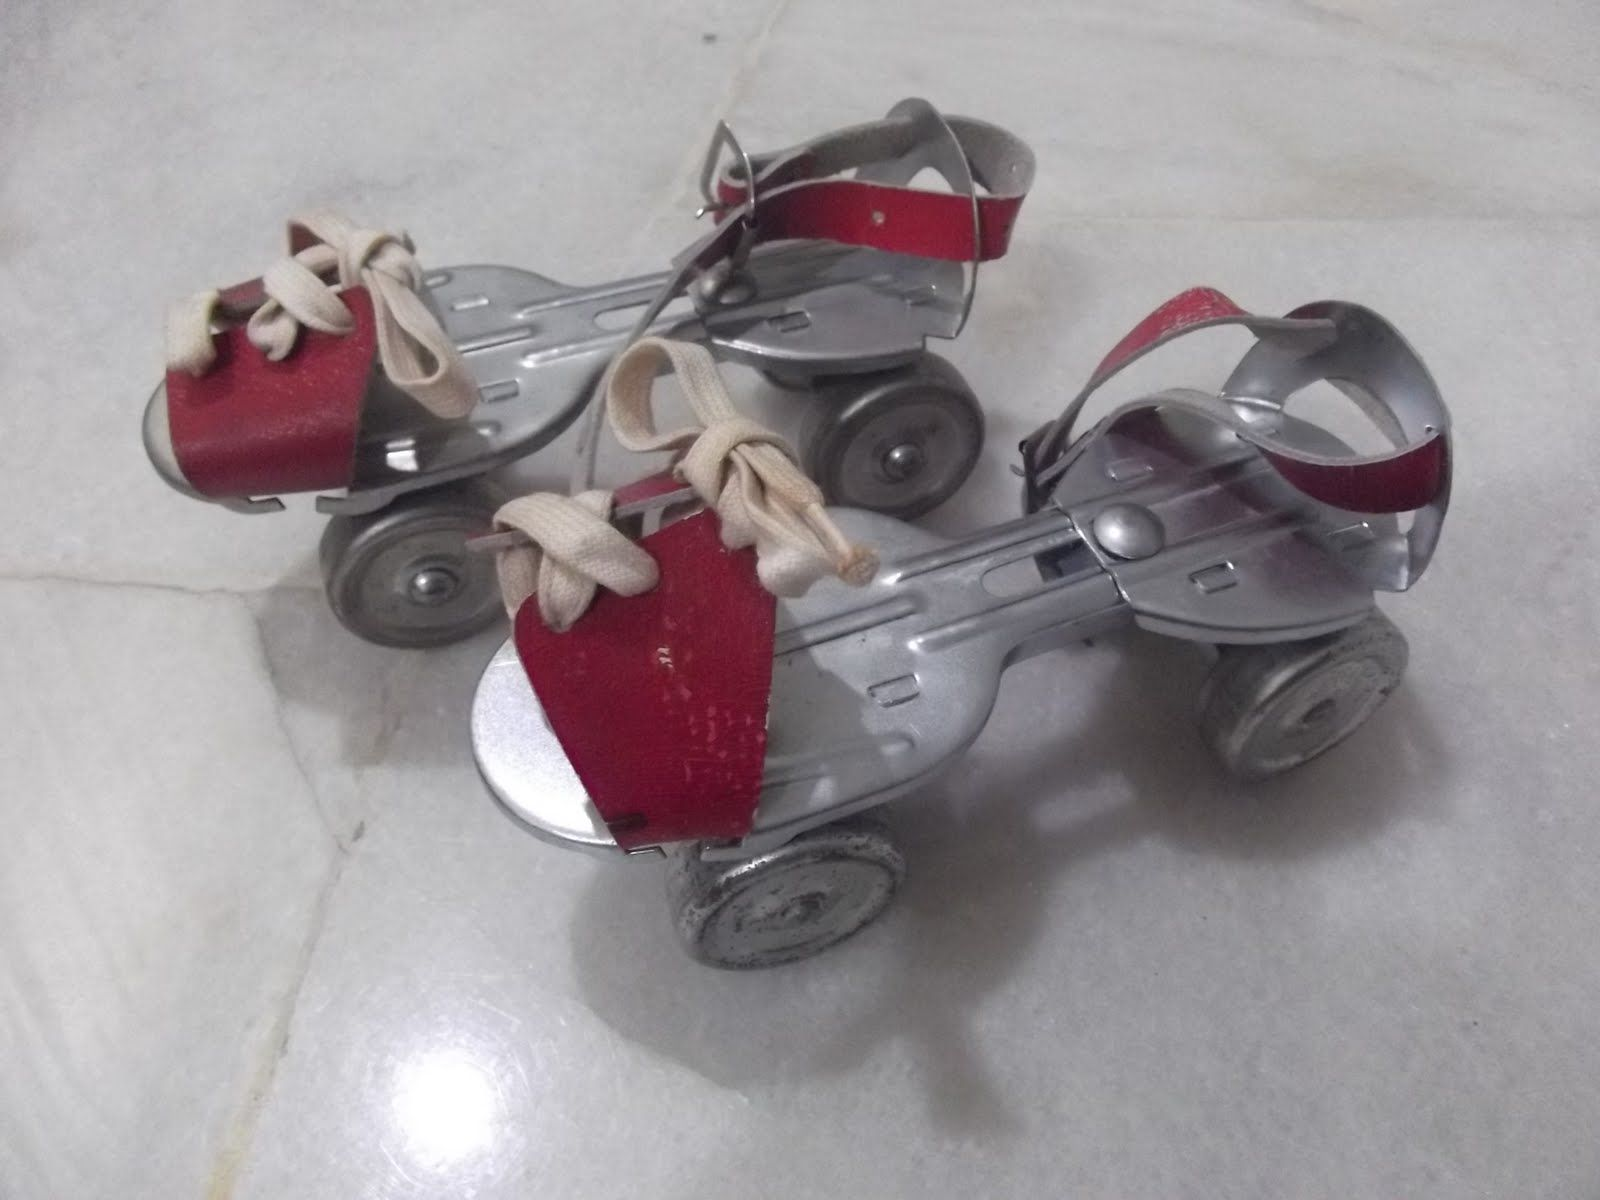 Roller skates adjustable - Adjustable Roller Skates What We Made Our Skate Boards Out Of Before They Became Available In The Uk I Had A Pair Of Skates That Used A Key And Had An